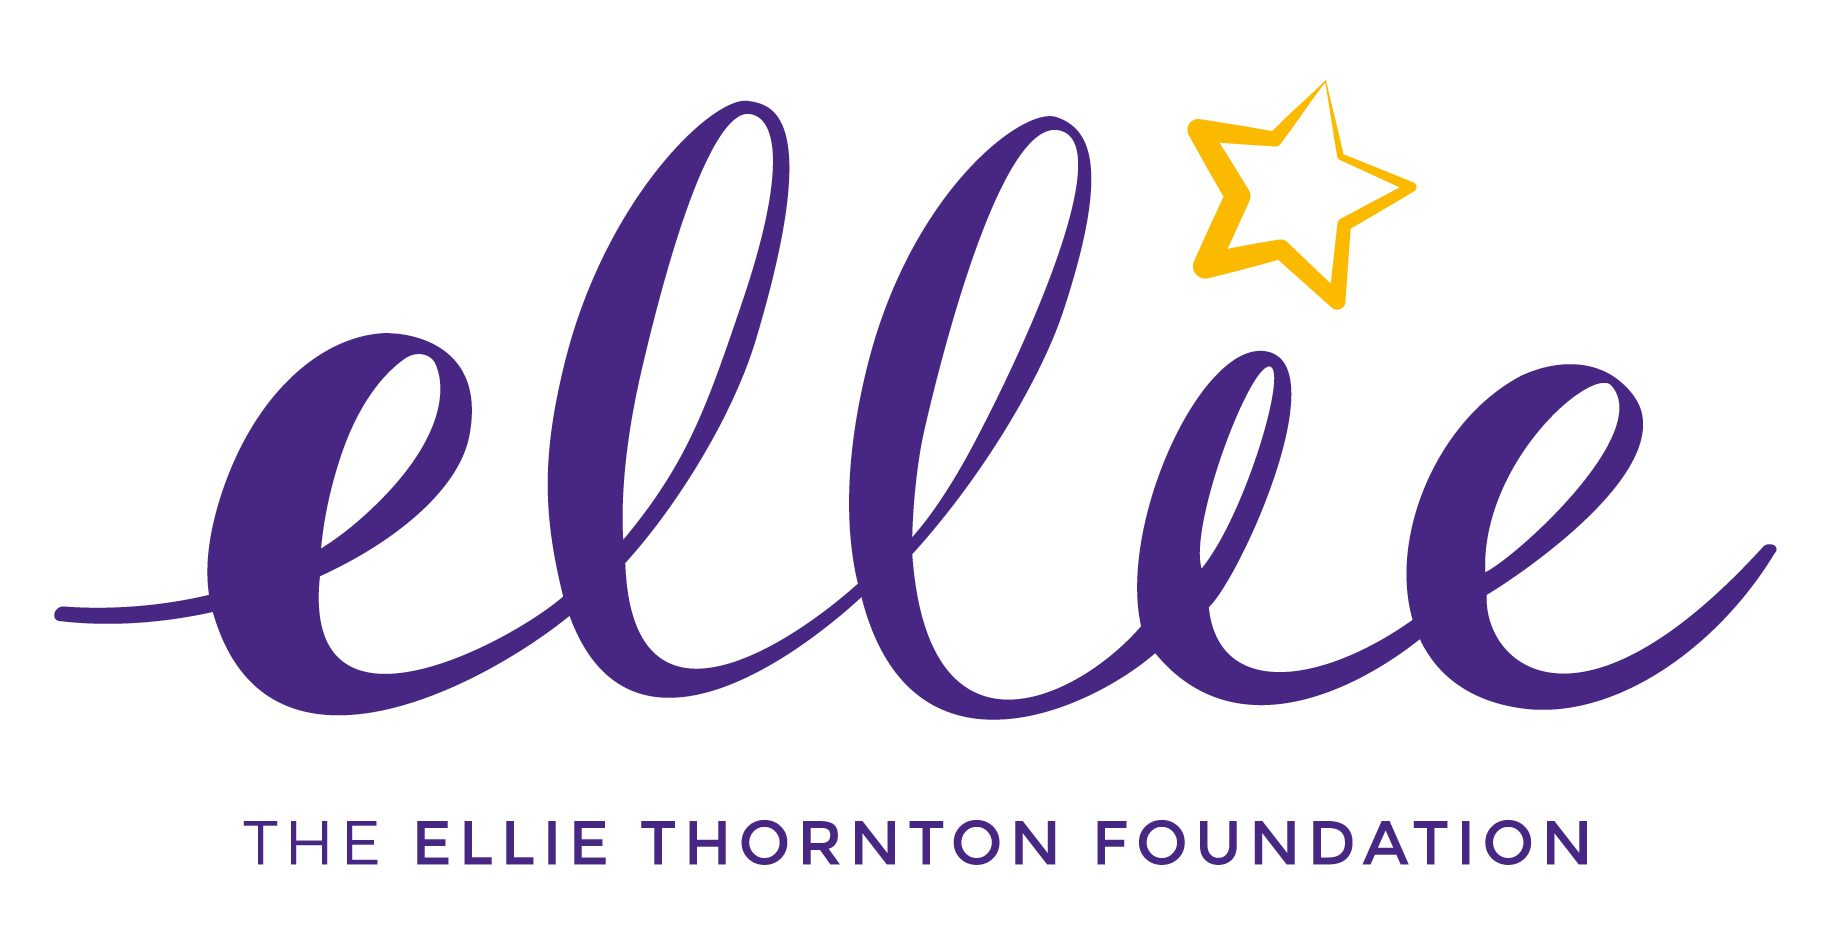 The Ellie Thornton Foundation